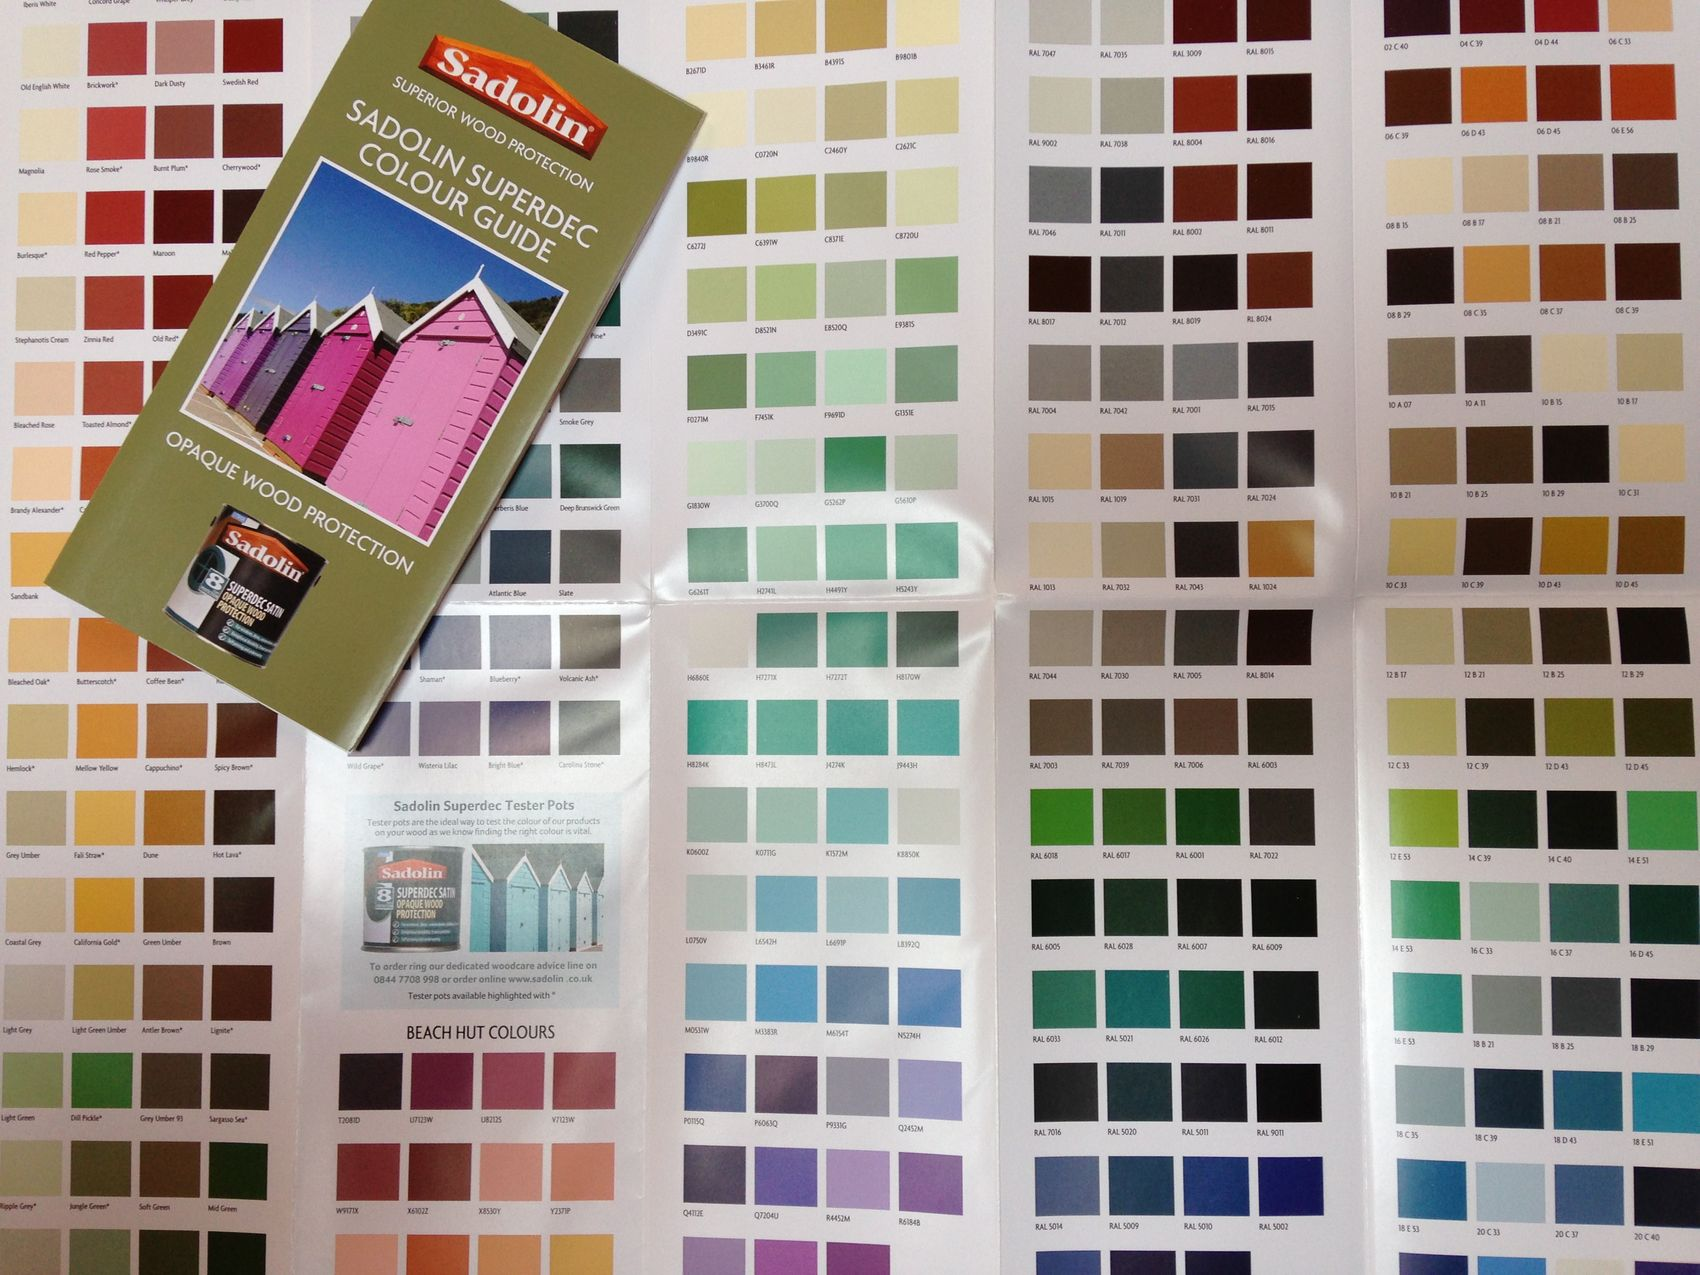 Sadolin paints colour chart crowdbuild for - Exterior wood paint colours uk concept ...